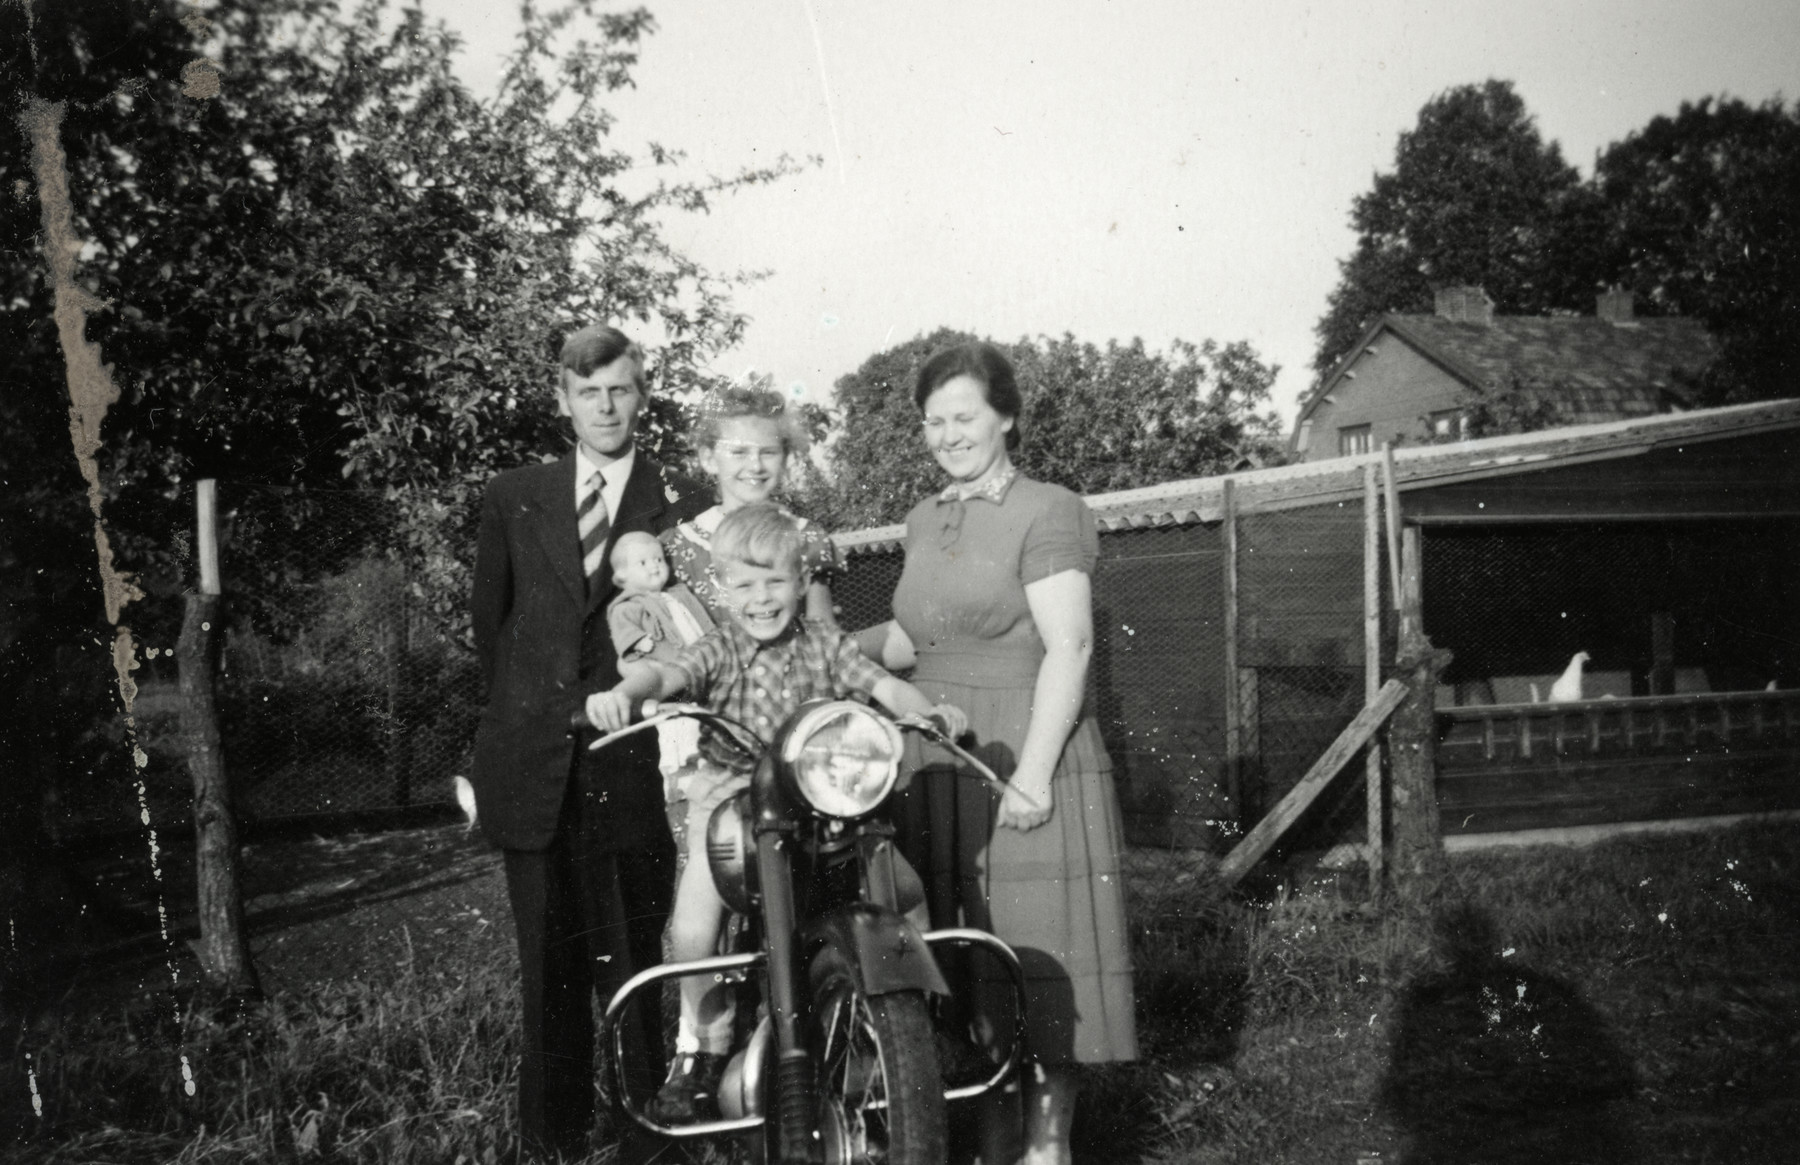 Dutch rescuers Reinier and Margaret Veerman play outside with their children on a motorcycle.  The Veermans hid the donor's brother Josef and were later recognized as Righteous Among the Nations.